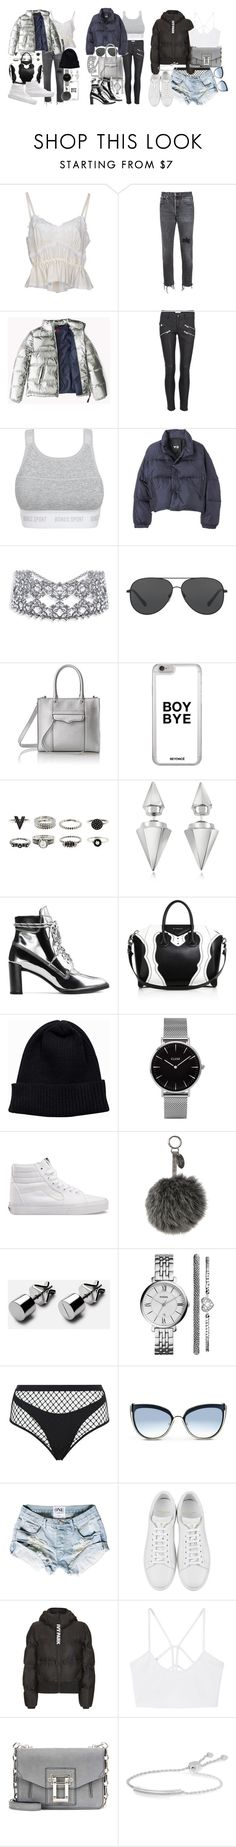 """""""NEW BLOGPOST ON victoriainspires.blogspot.com"""" by victoriamk ❤ liked on Polyvore featuring Dolce&Gabbana, RE/DONE, Anine Bing, Bonds, Y-3, Michael Kors, Rebecca Minkoff, Vita Fede, Stuart Weitzman and Givenchy"""